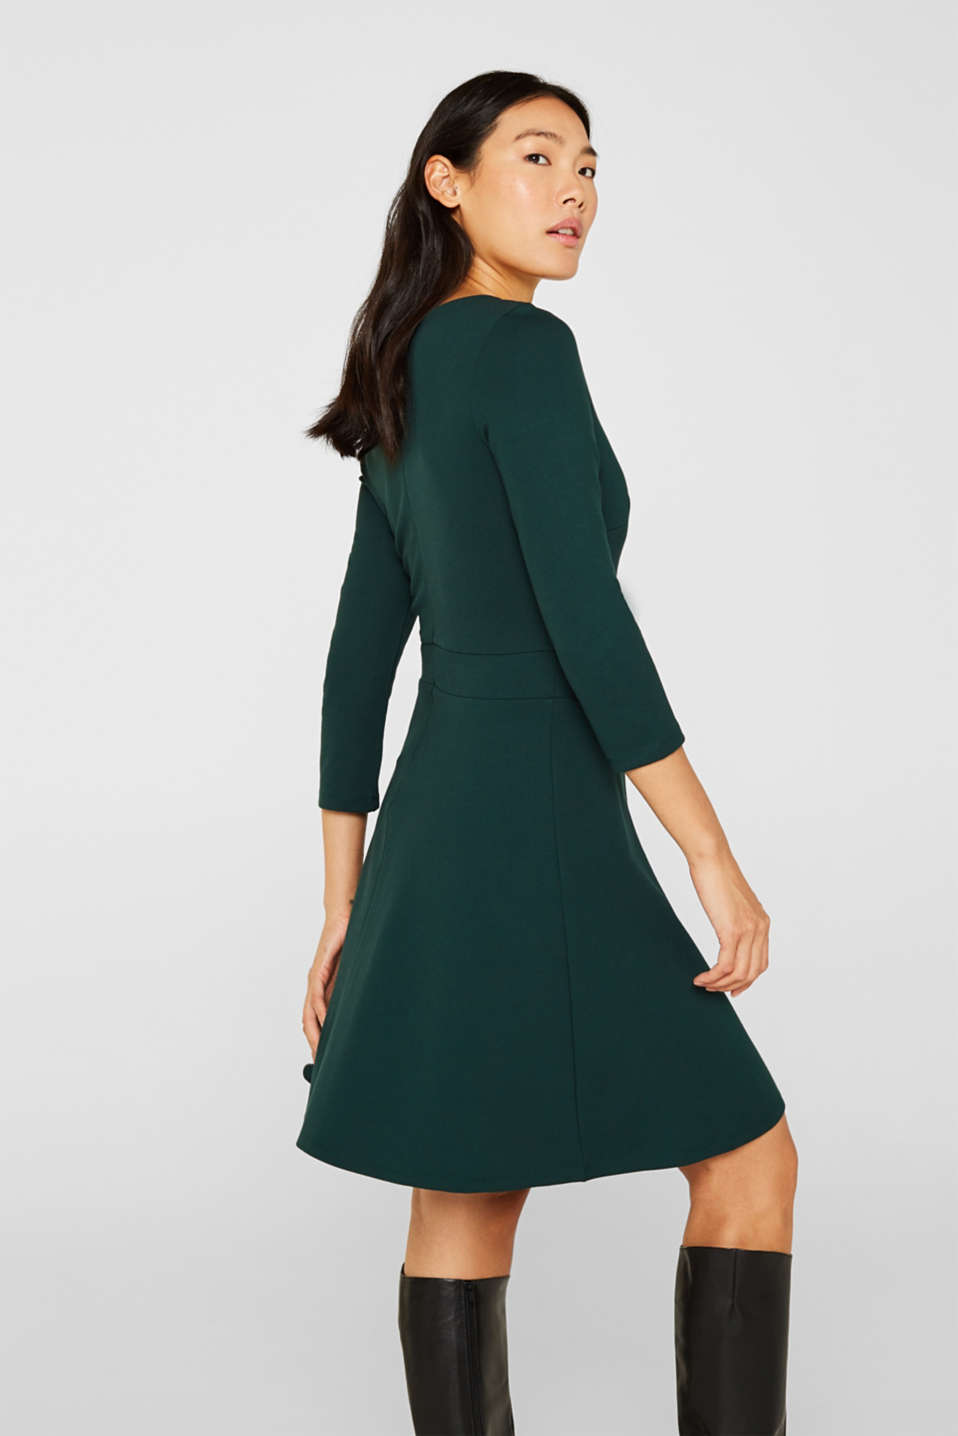 Flared dress made of stretch jersey, DARK TEAL GREEN, detail image number 5